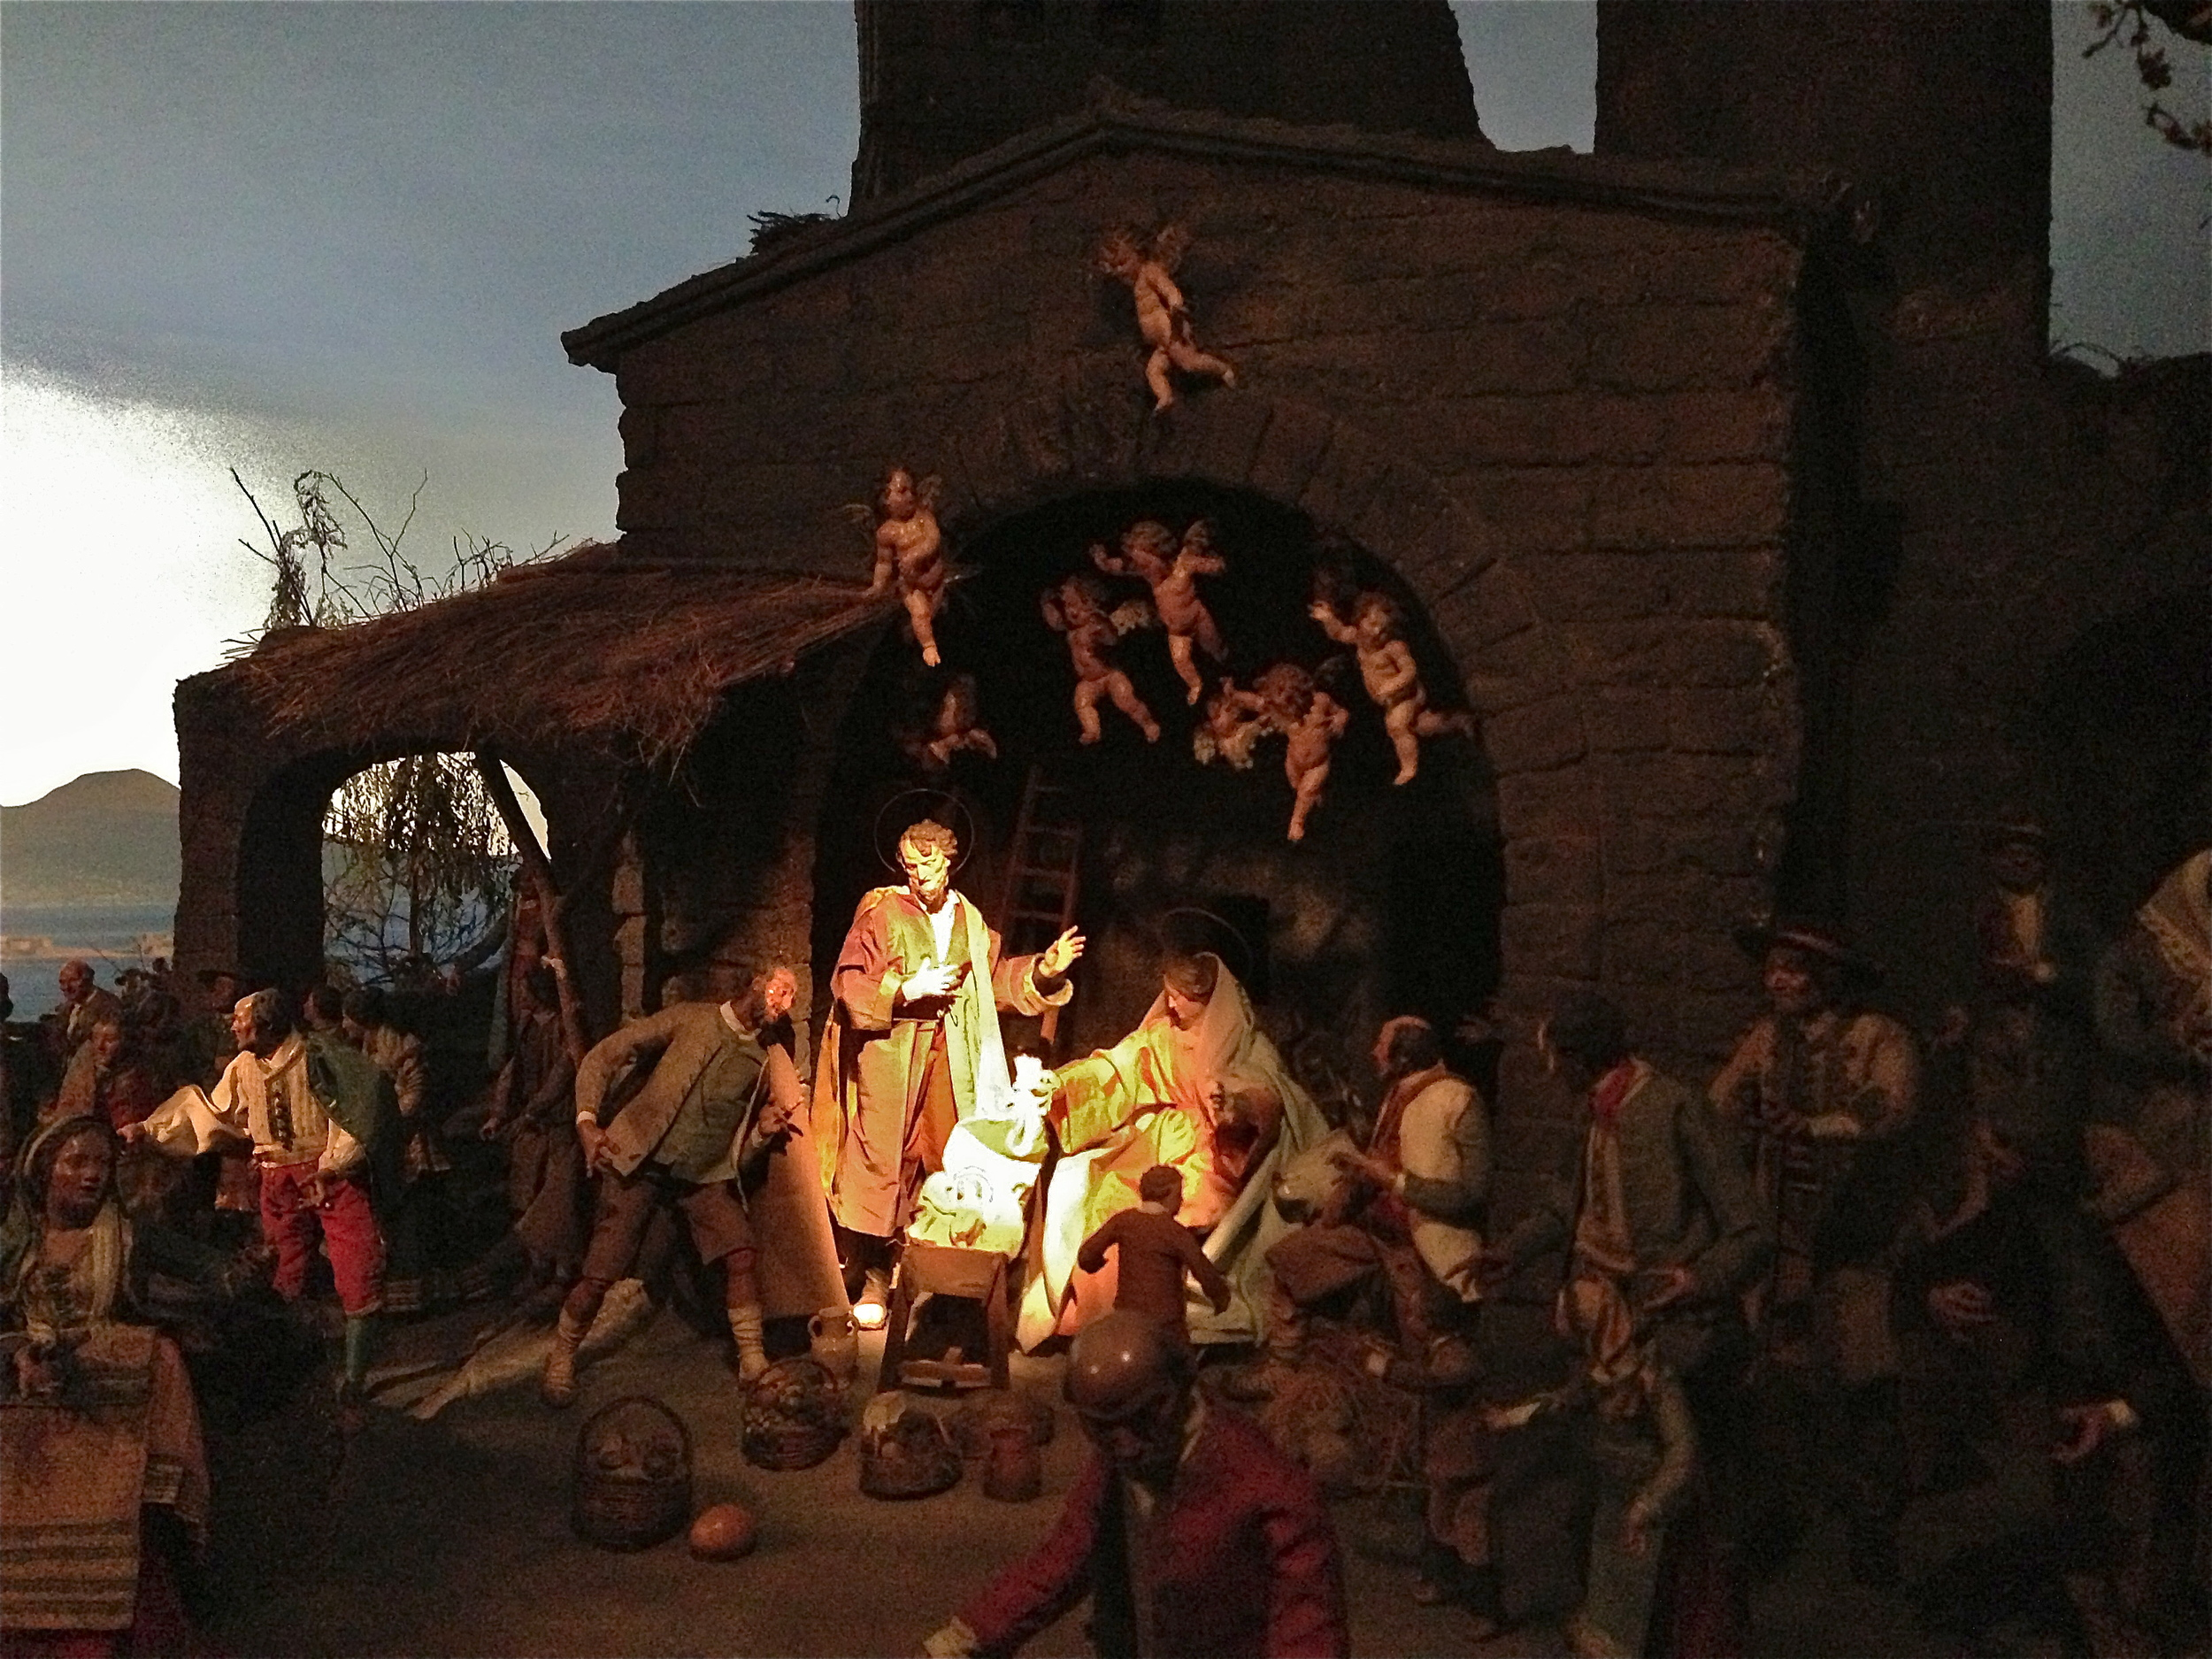 A STUNNING CRECHE AT THE BAVARIAN NATIONAL MUSEUM